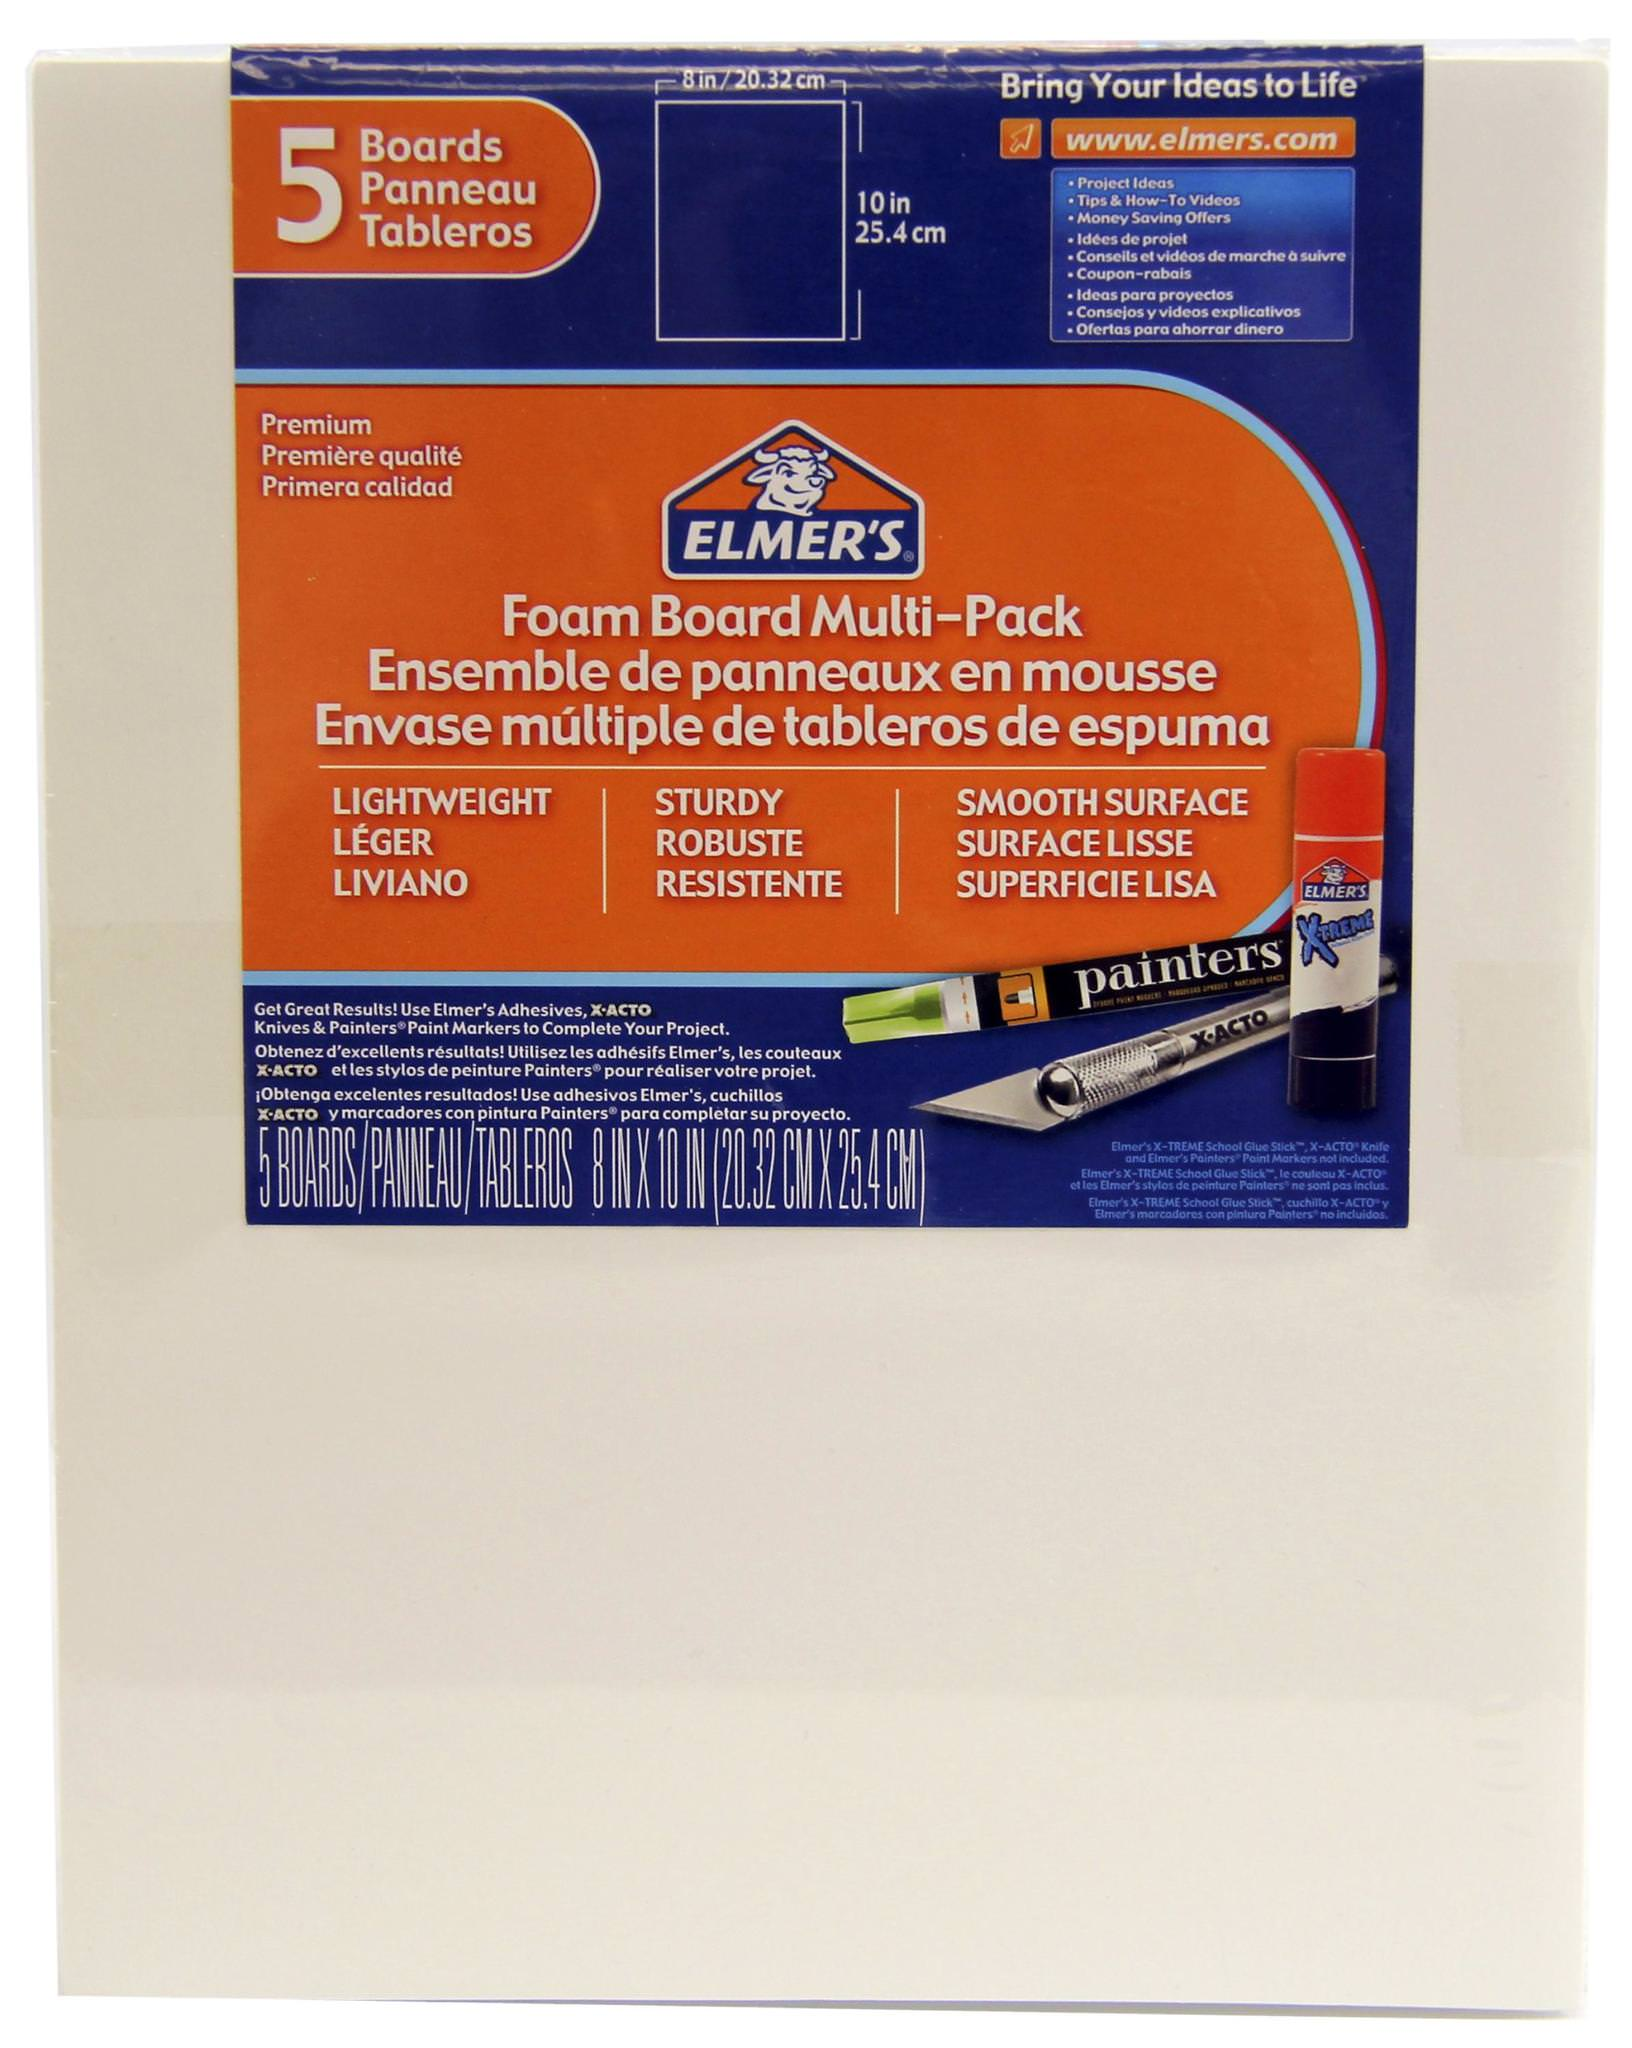 Elmer's Foam Board Multi-Pack, White, 8x10 Inch, Pack of 5 by Newell Brands